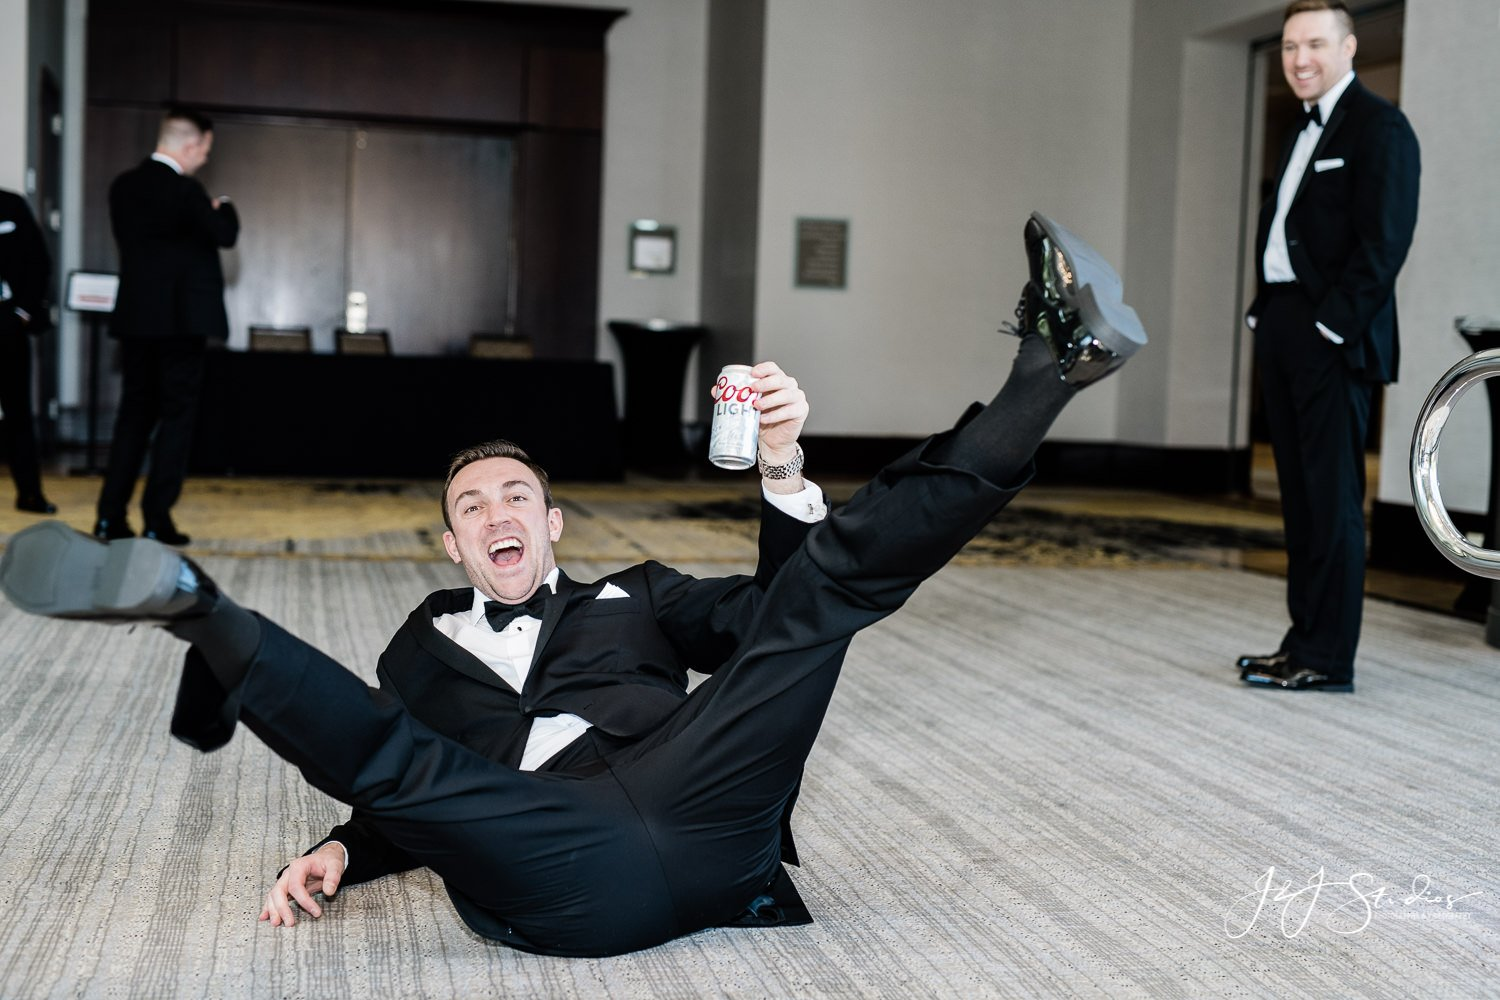 groomsmen drinking and doing spread eagle pose on floor with coors light bear photo by j&j studios